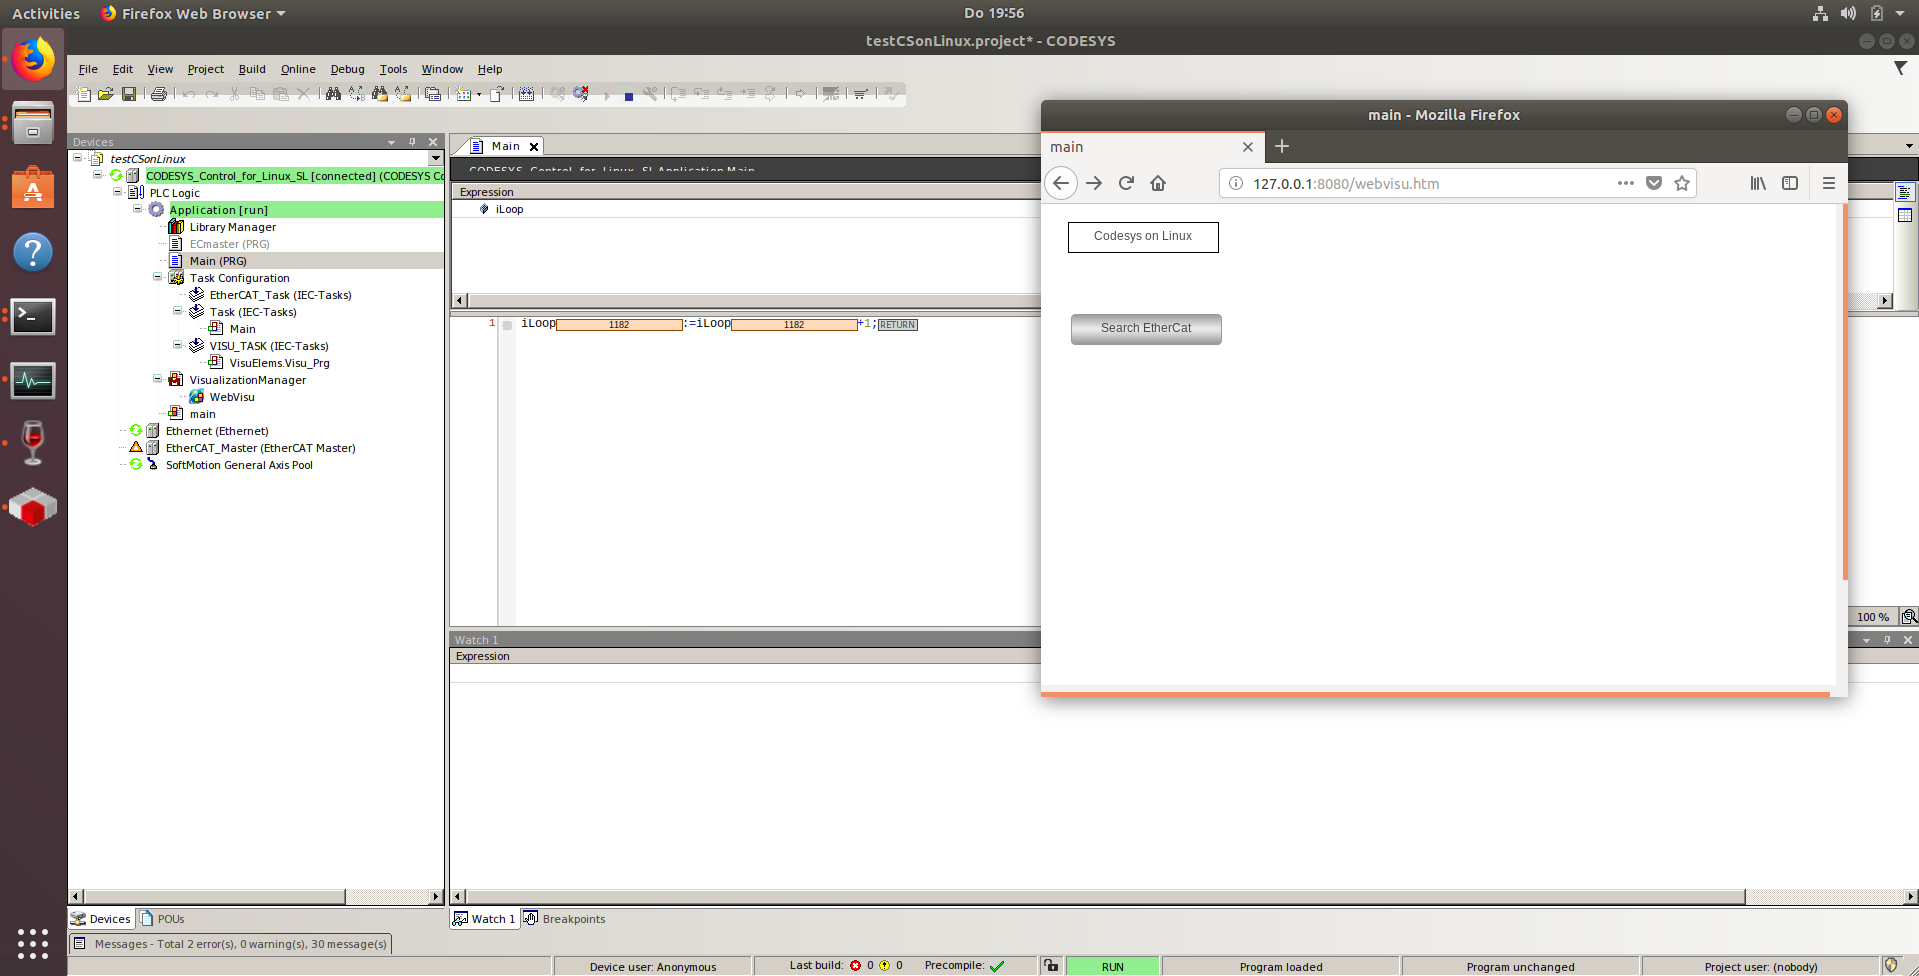 Codesys IDE and PLC on Linux with Webvisu